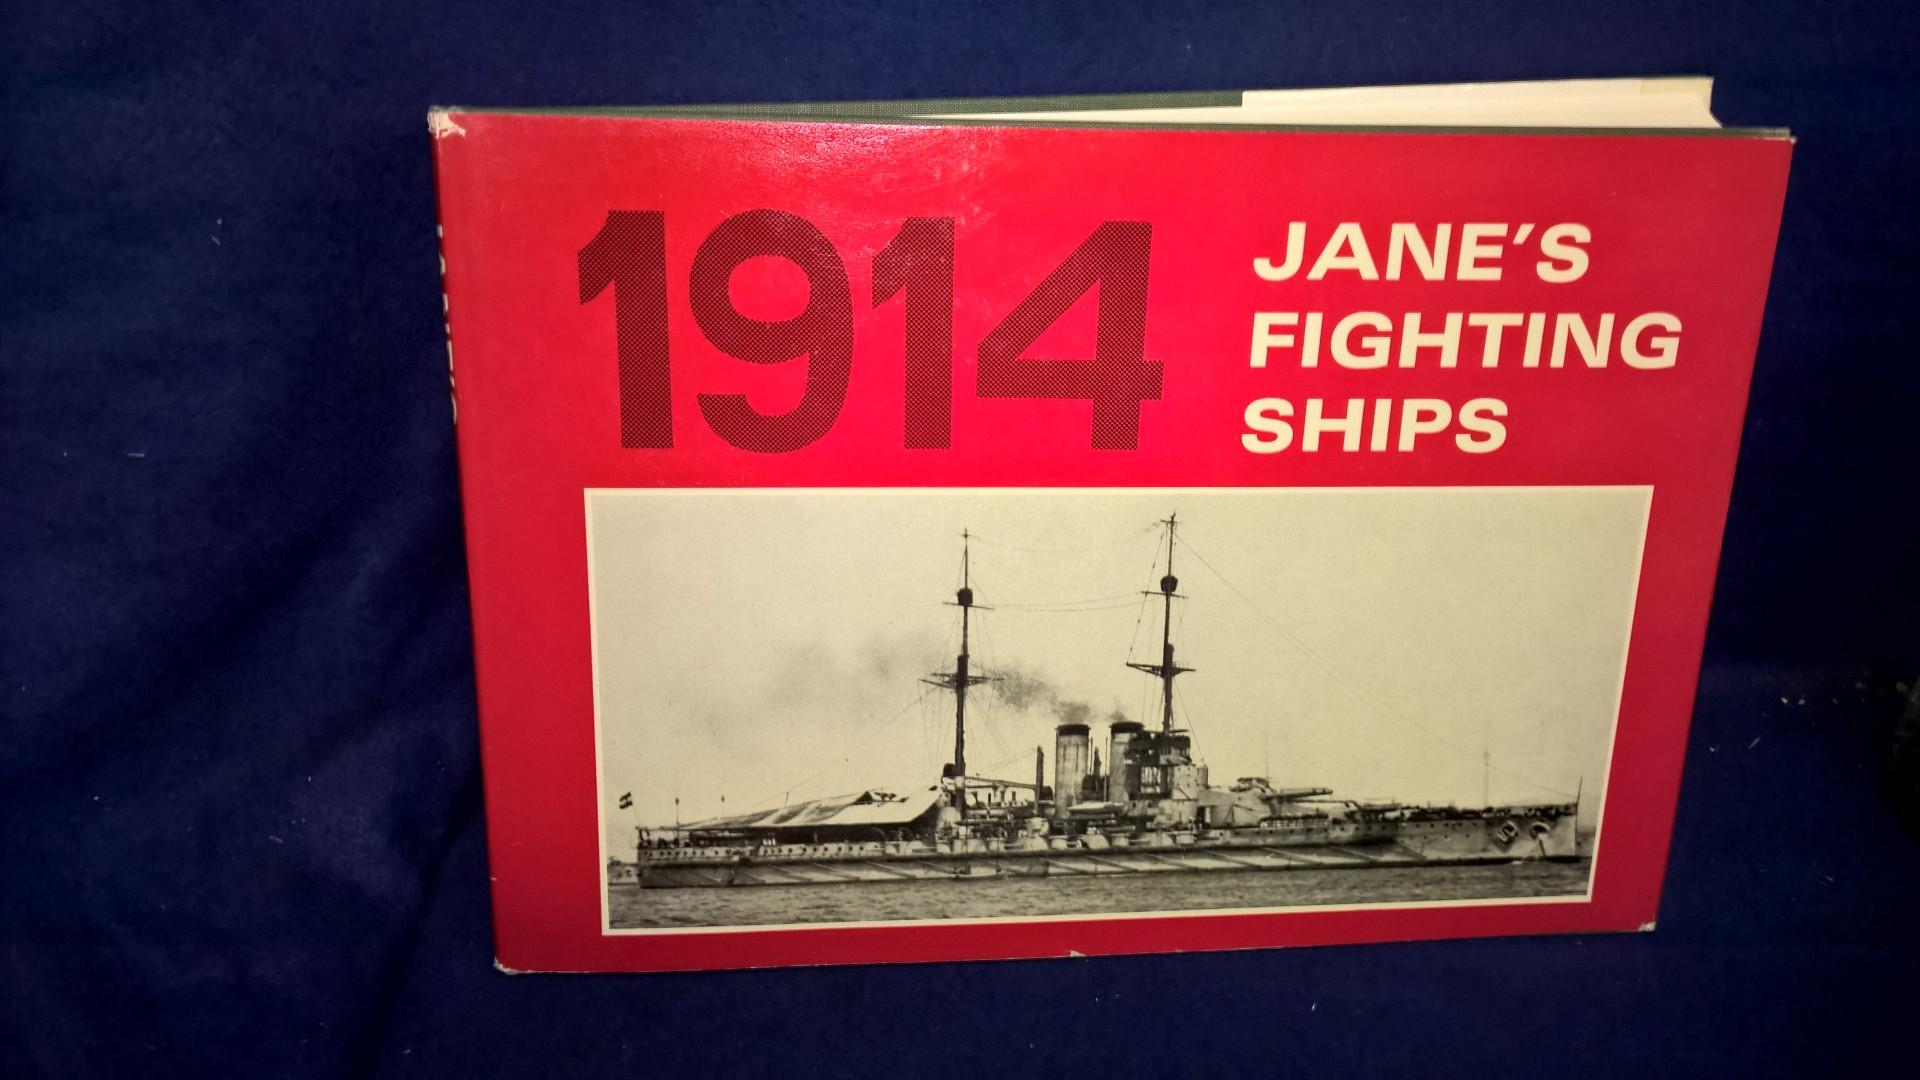 Jane's Fighting Ships 1914. A Reprint oof the Edition of Fighting Ships, including a chapter on the progress of marine engineering by charles de grave sells.